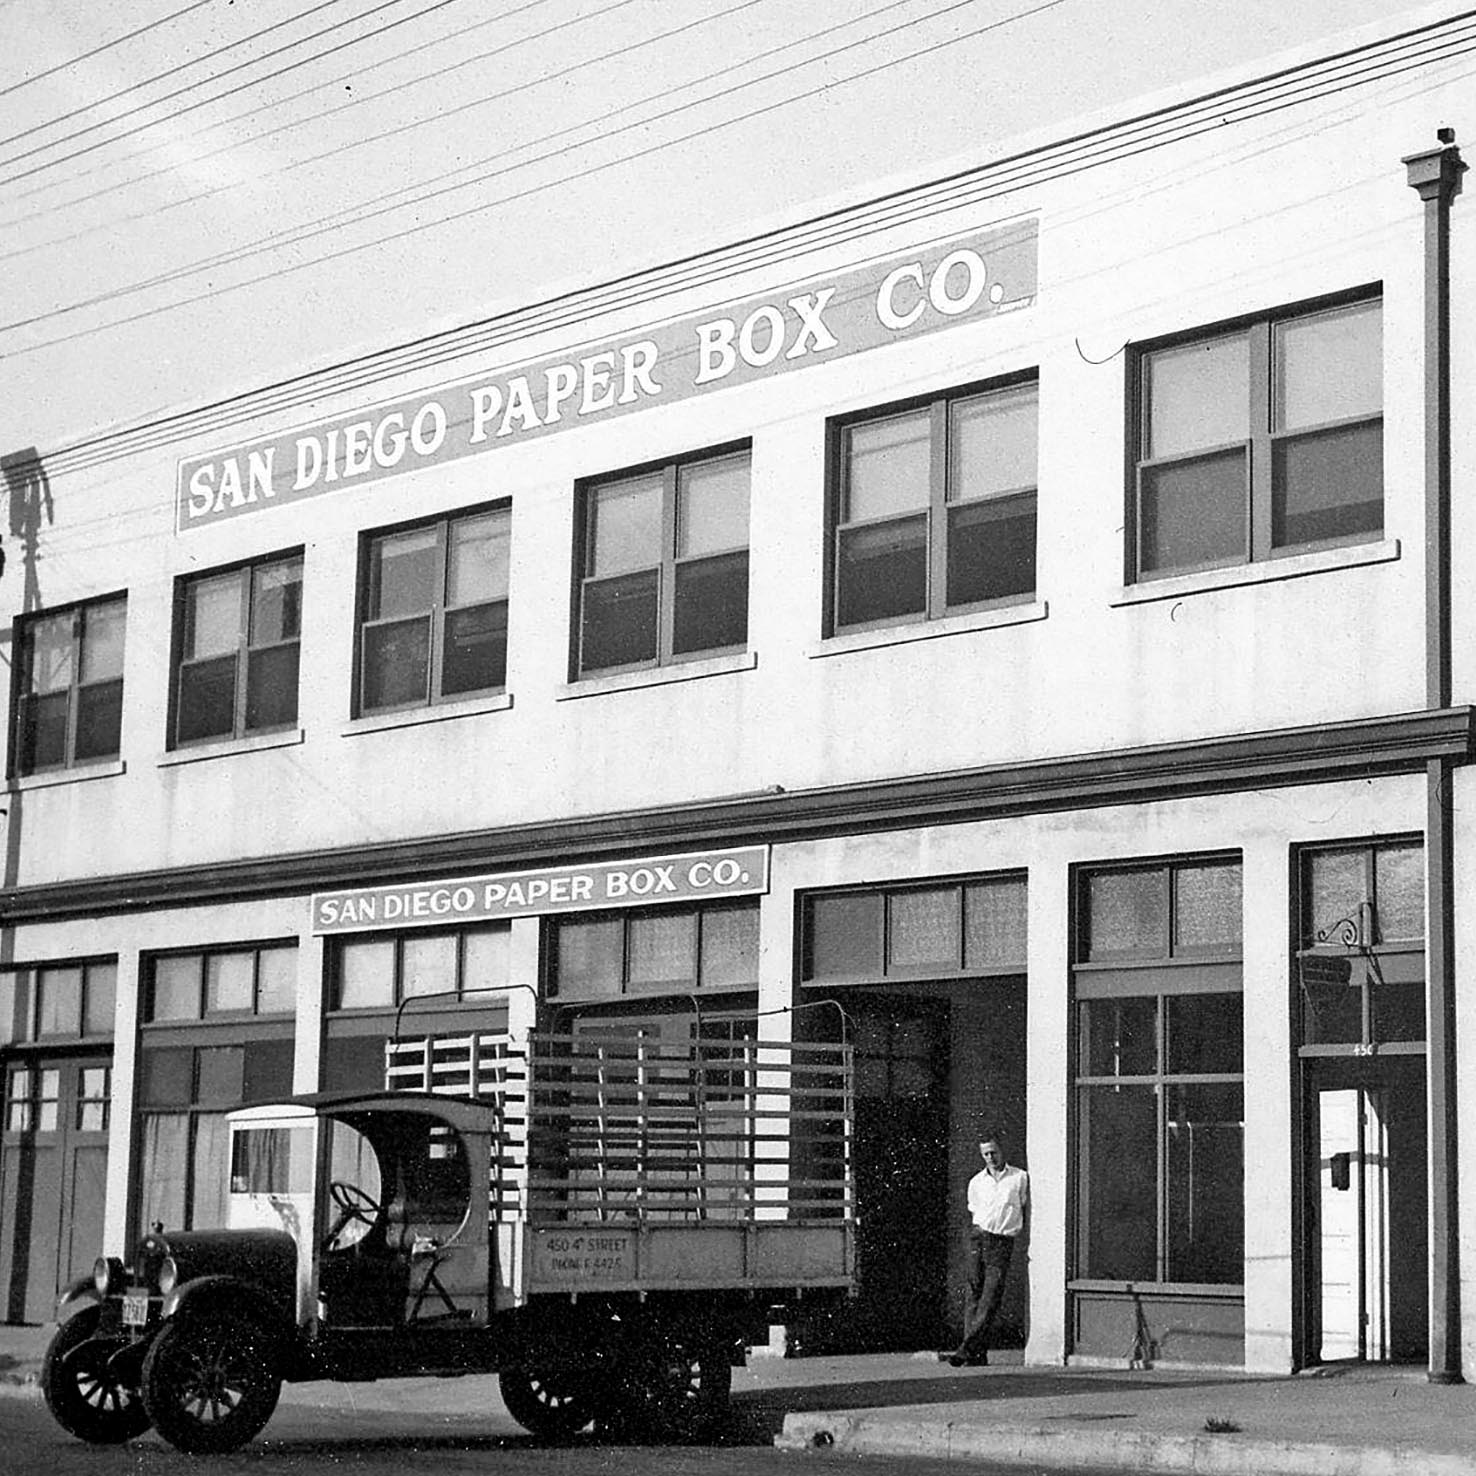 Historic storefront with truck